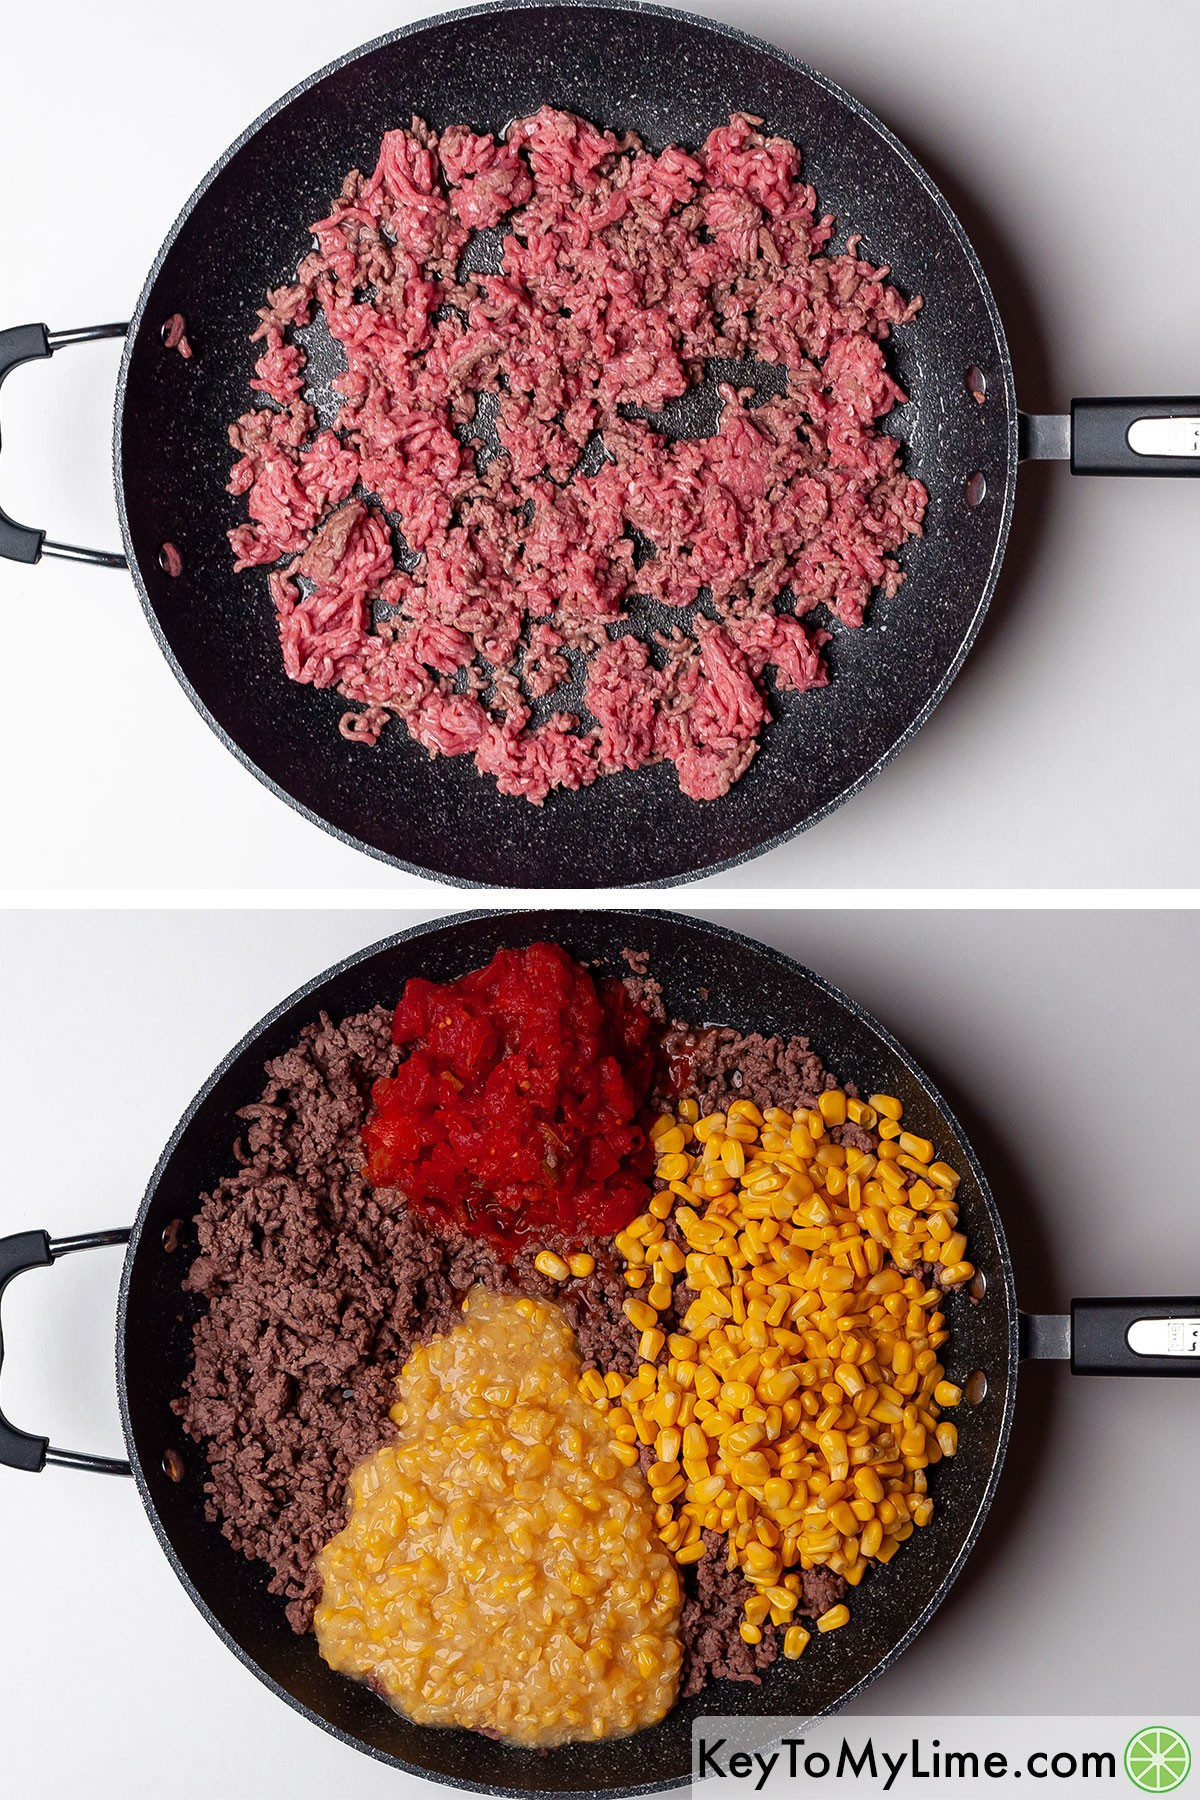 Browning ground beef, then adding corn and RO-TEL.